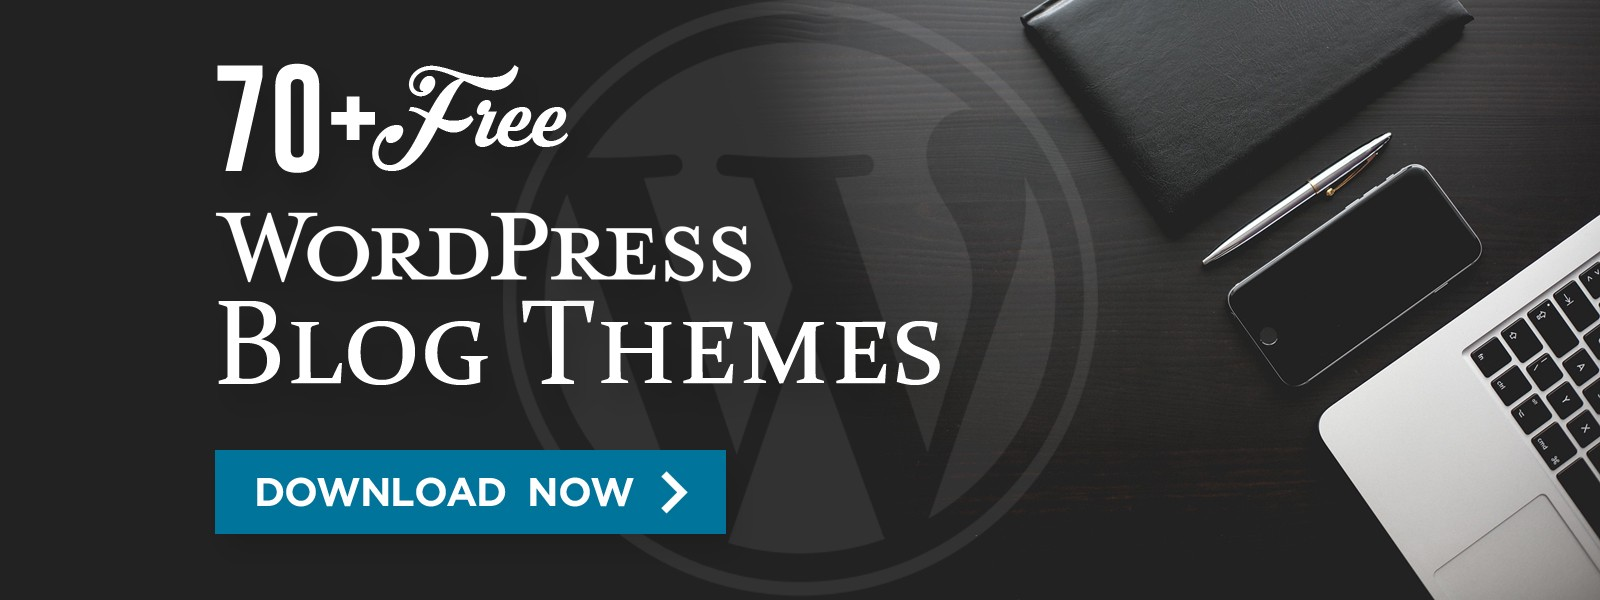 70+ Free Best WordPress Blog Themes (DOWNLOAD NOW) for 2018